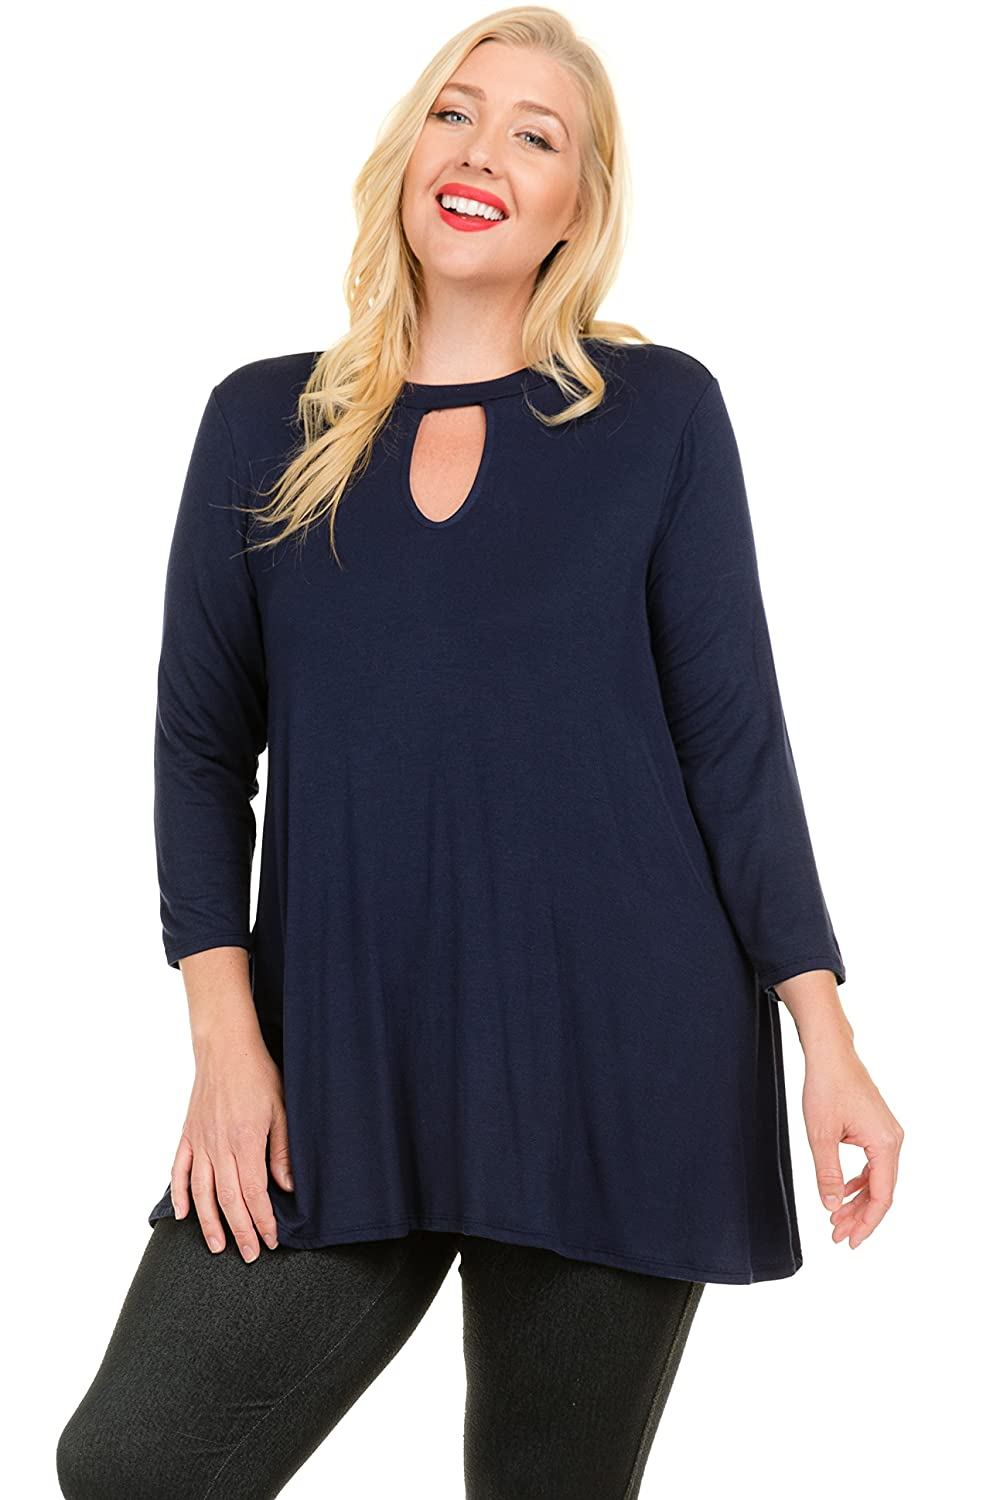 4ade2e5cd65 Janette Plus Plus Size Solid Jersey Tunic Blouse Top Featuring  Three-Quarter Sleeves and Open Neckline at Amazon Women s Clothing store